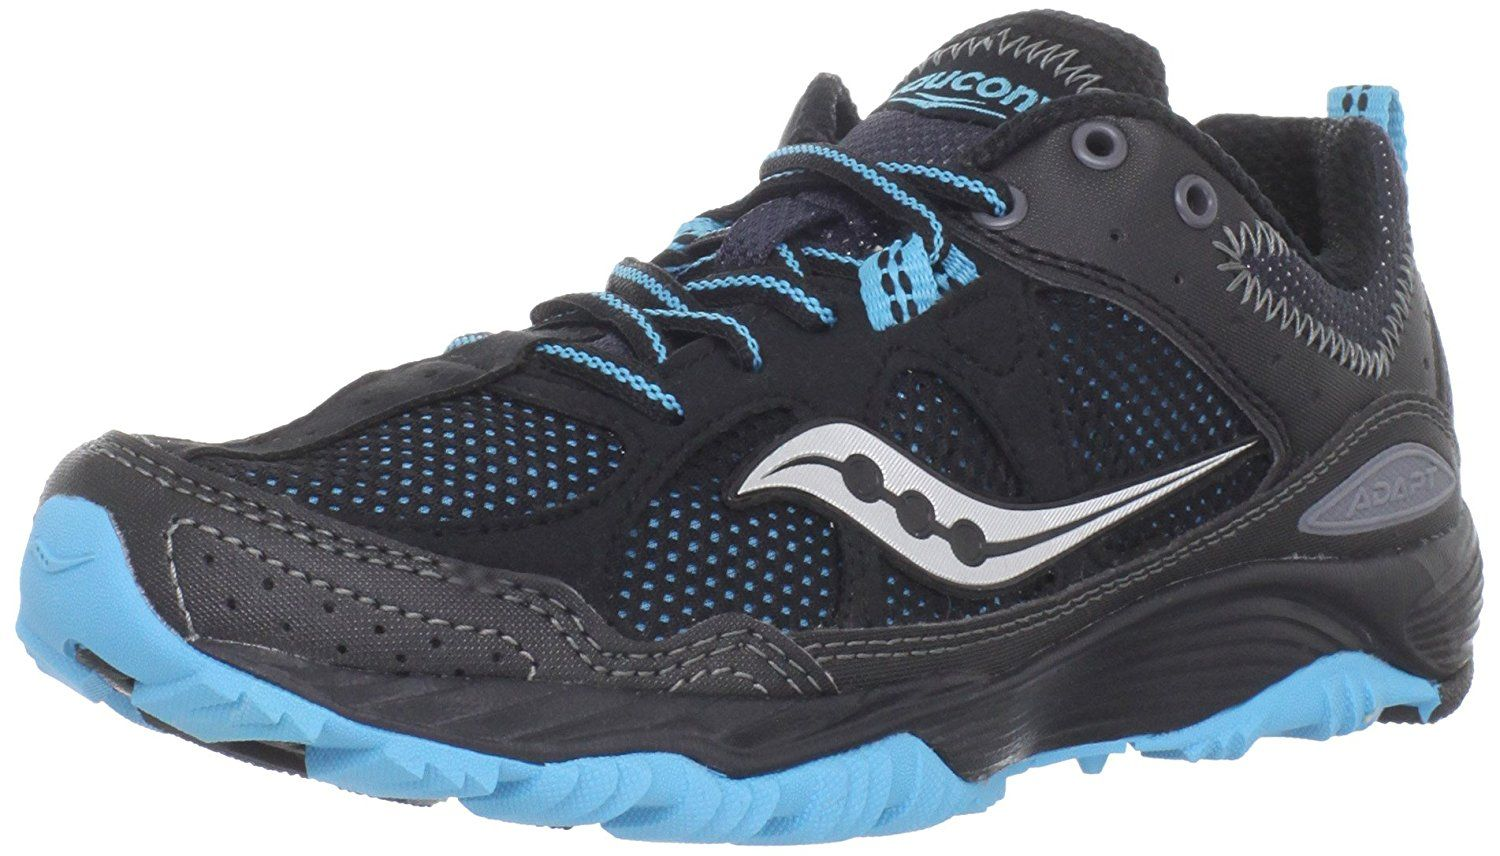 Saucony Mujer Grid Shoe Adapt Trail Running Shoe Grid Review more details 00090f